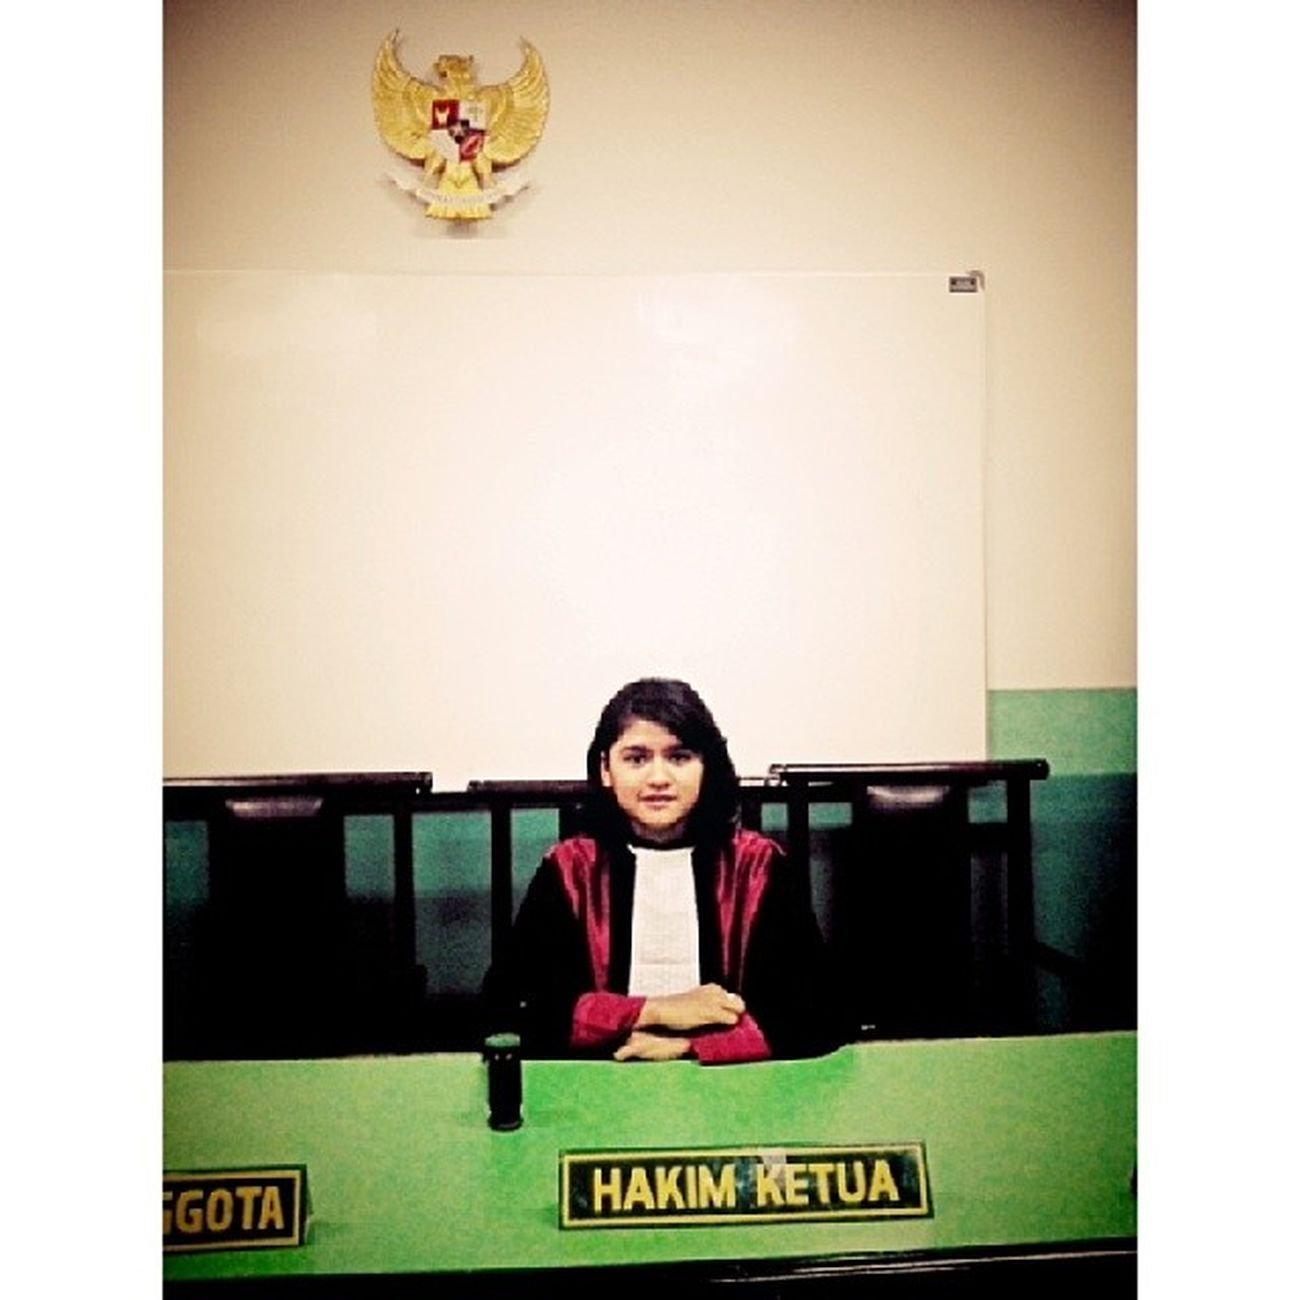 Litigasi Lab Sidang Perdata lawstudent campus